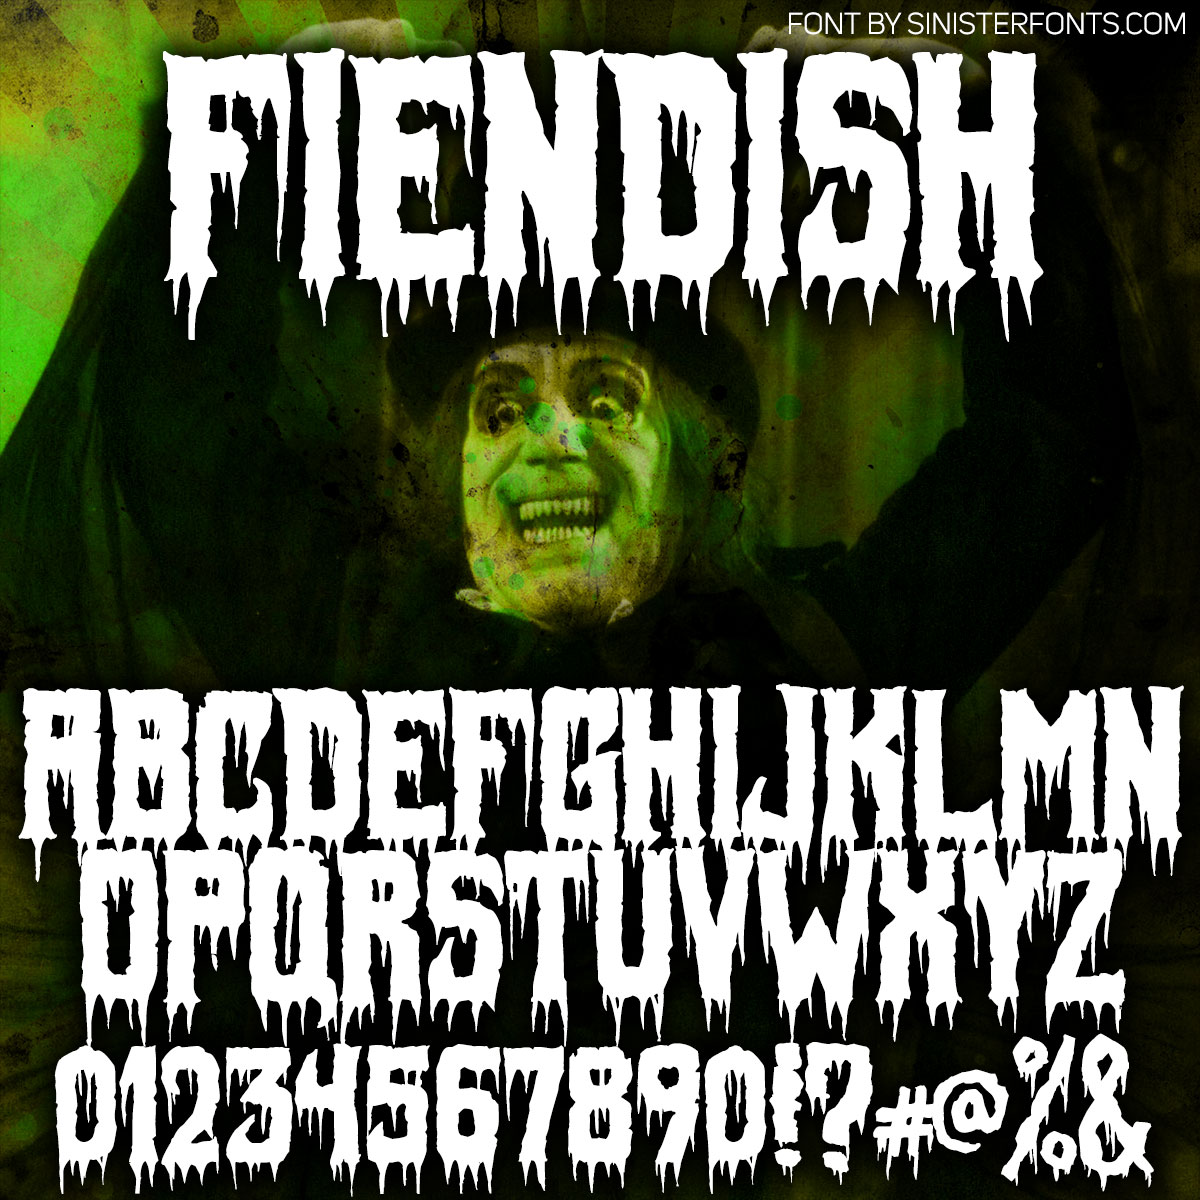 Fiendish Font : Click to Download